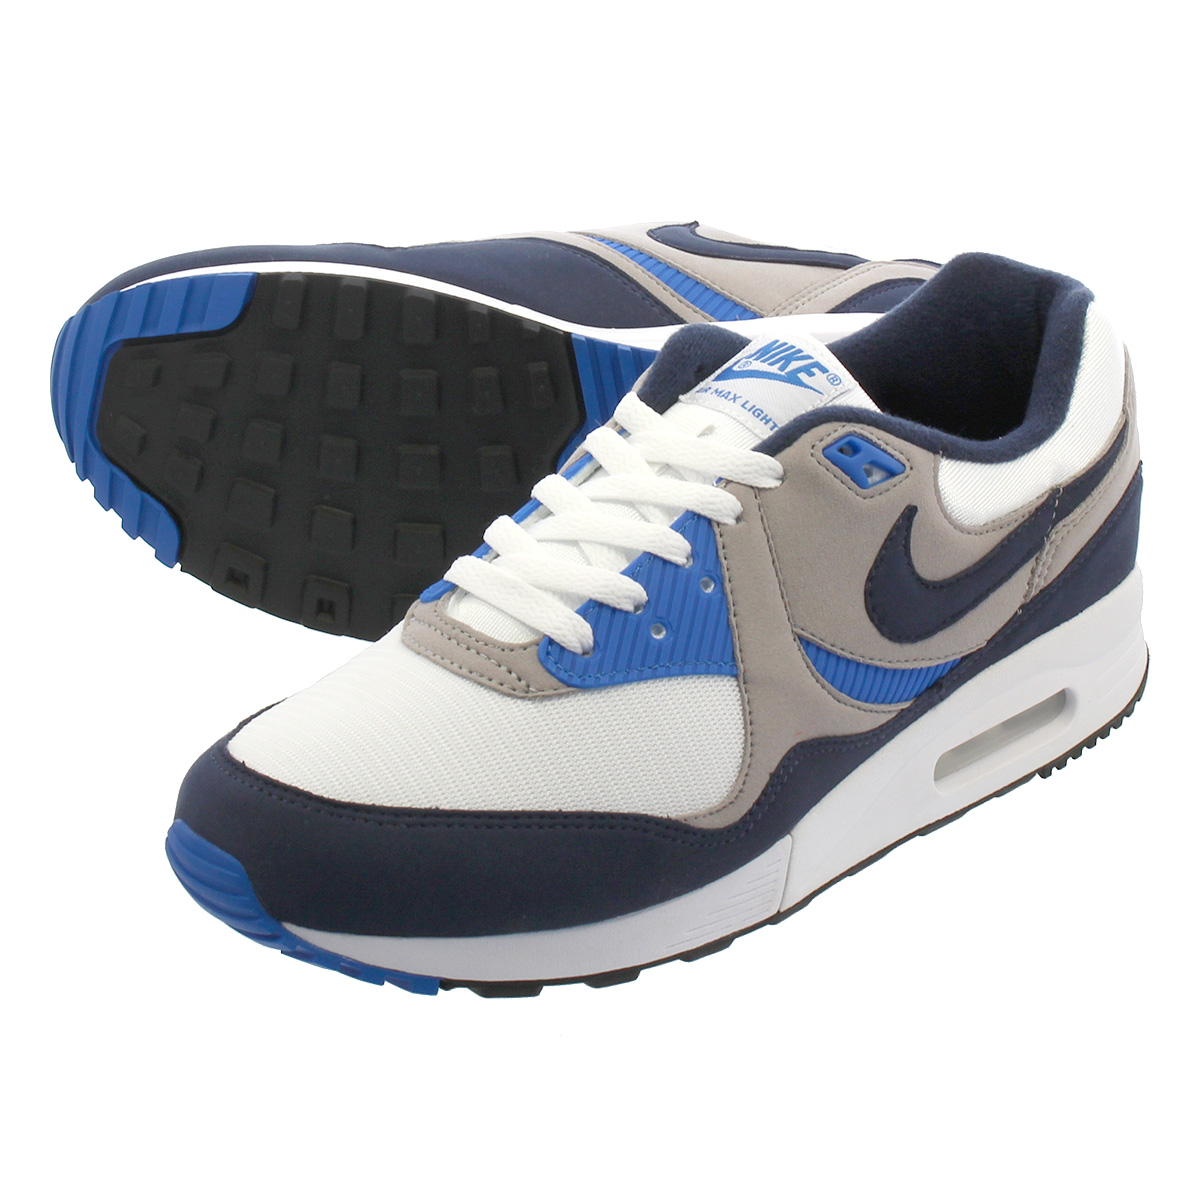 NIKE AIR MAX LIGHT ナイキ エア マックス ライト WHITE/OBSIDIAN/ATMOSPHERE GREY/REGAL BLUE ao8285-100